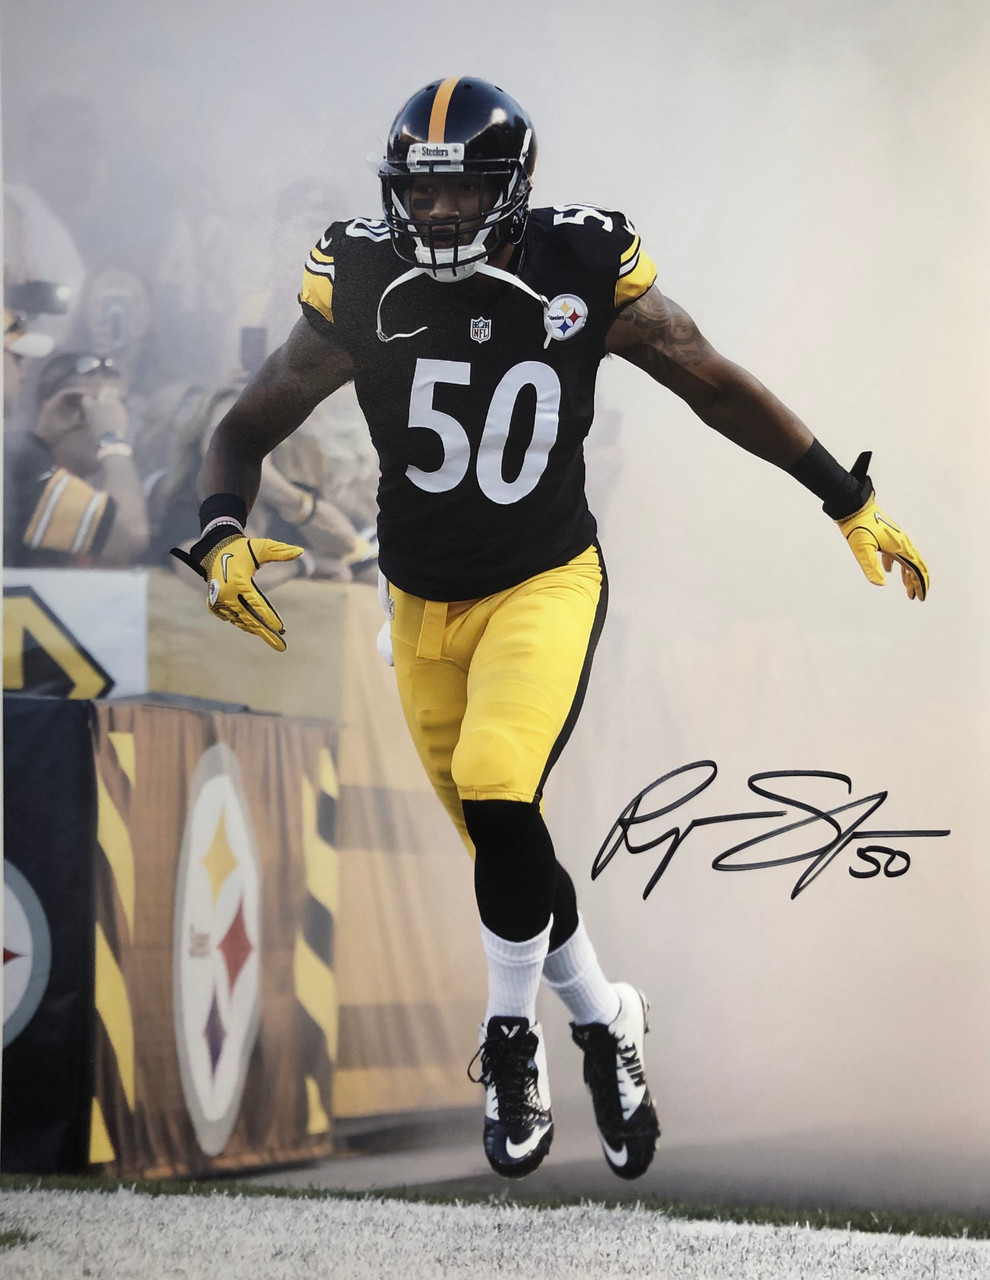 ryan shazier signed jersey